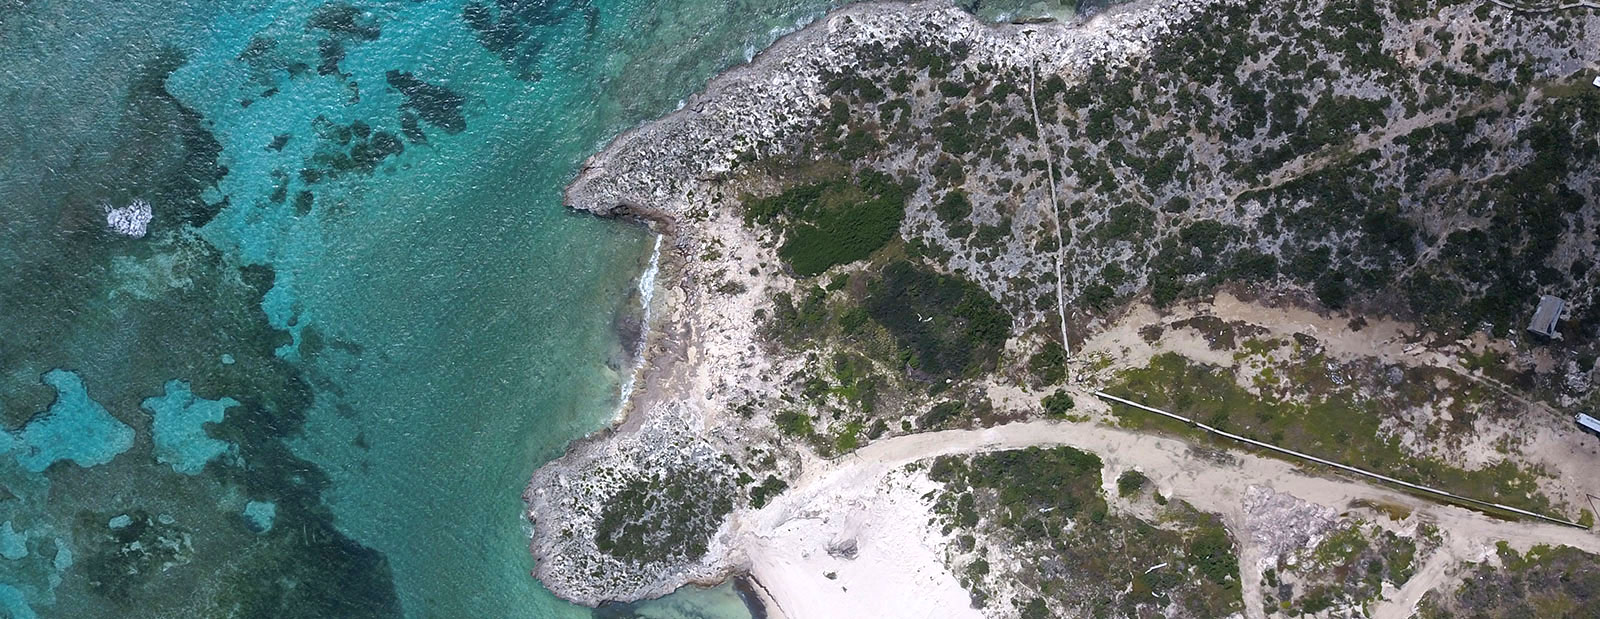 Tucker Point Turks Amp Caicos Oceanfront Land For Sale